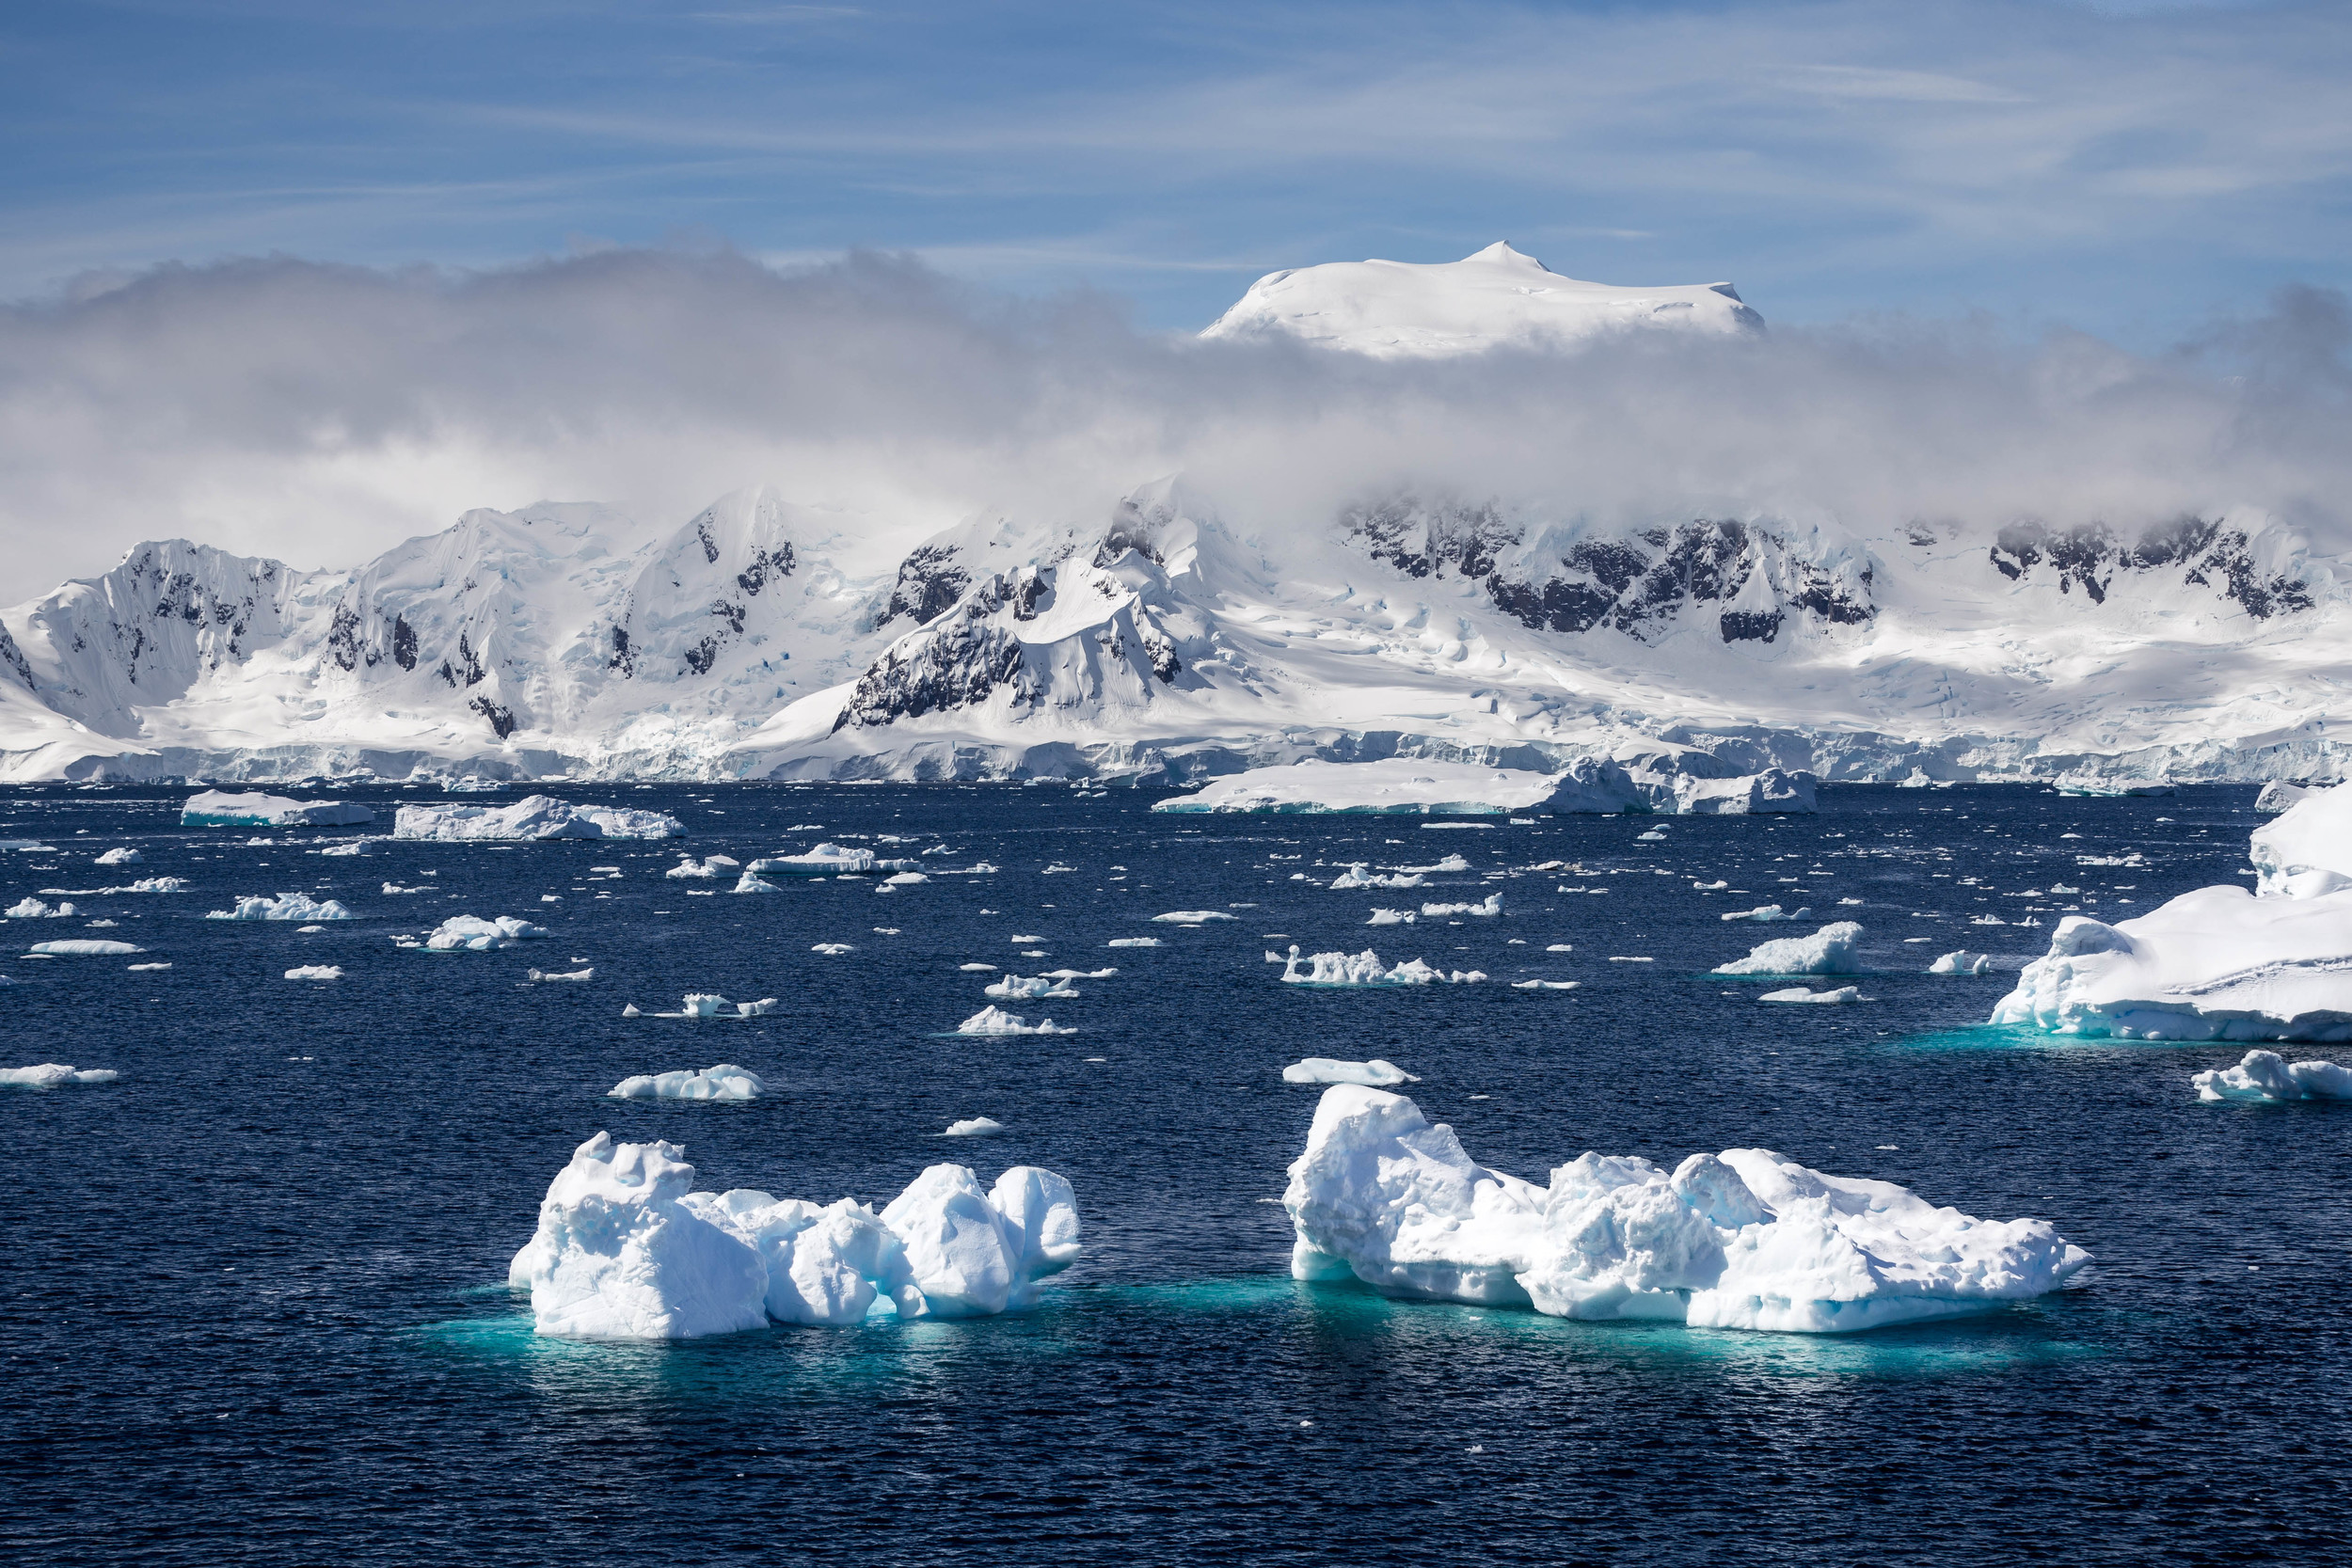 Approaching Charlotte Bay, Antarctica. The stuff of dreams.